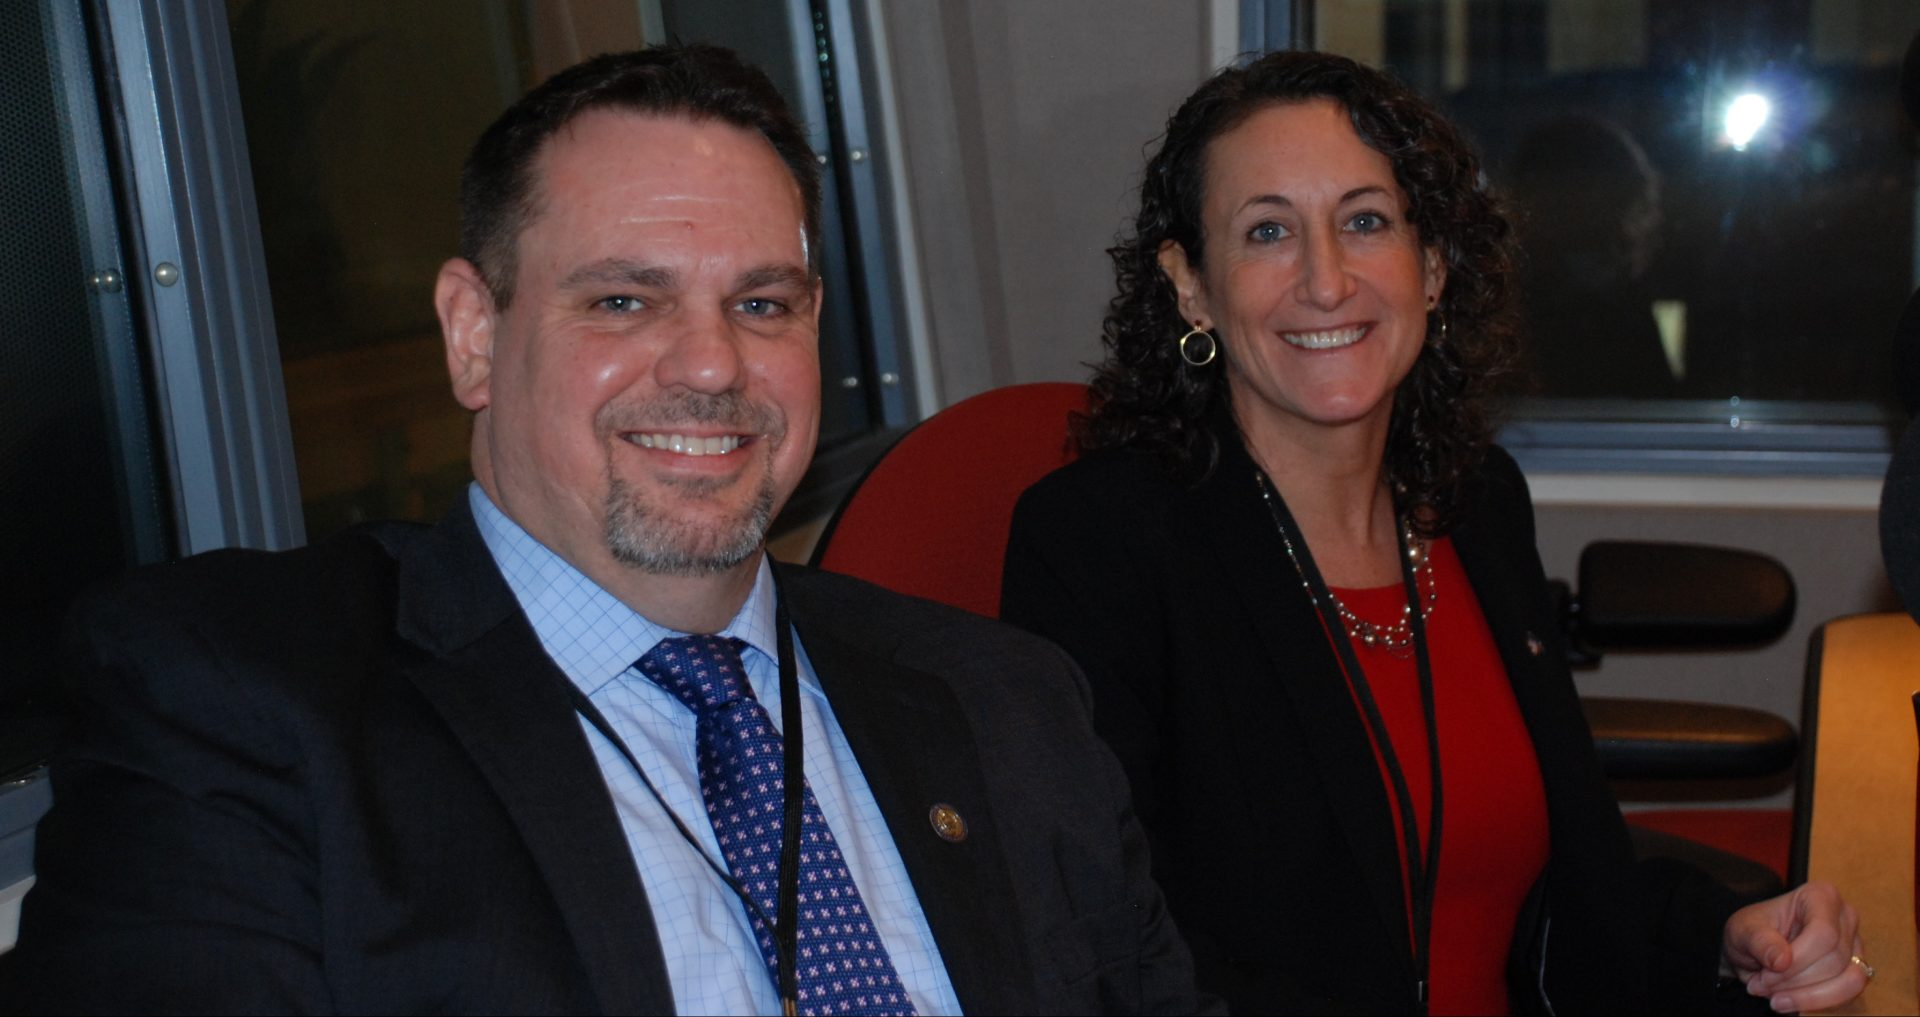 Secretary of State Kathy Bookvar and Deputy Secretary of State Jonathan Marks appear on Smart Talk on February 12, 2020.